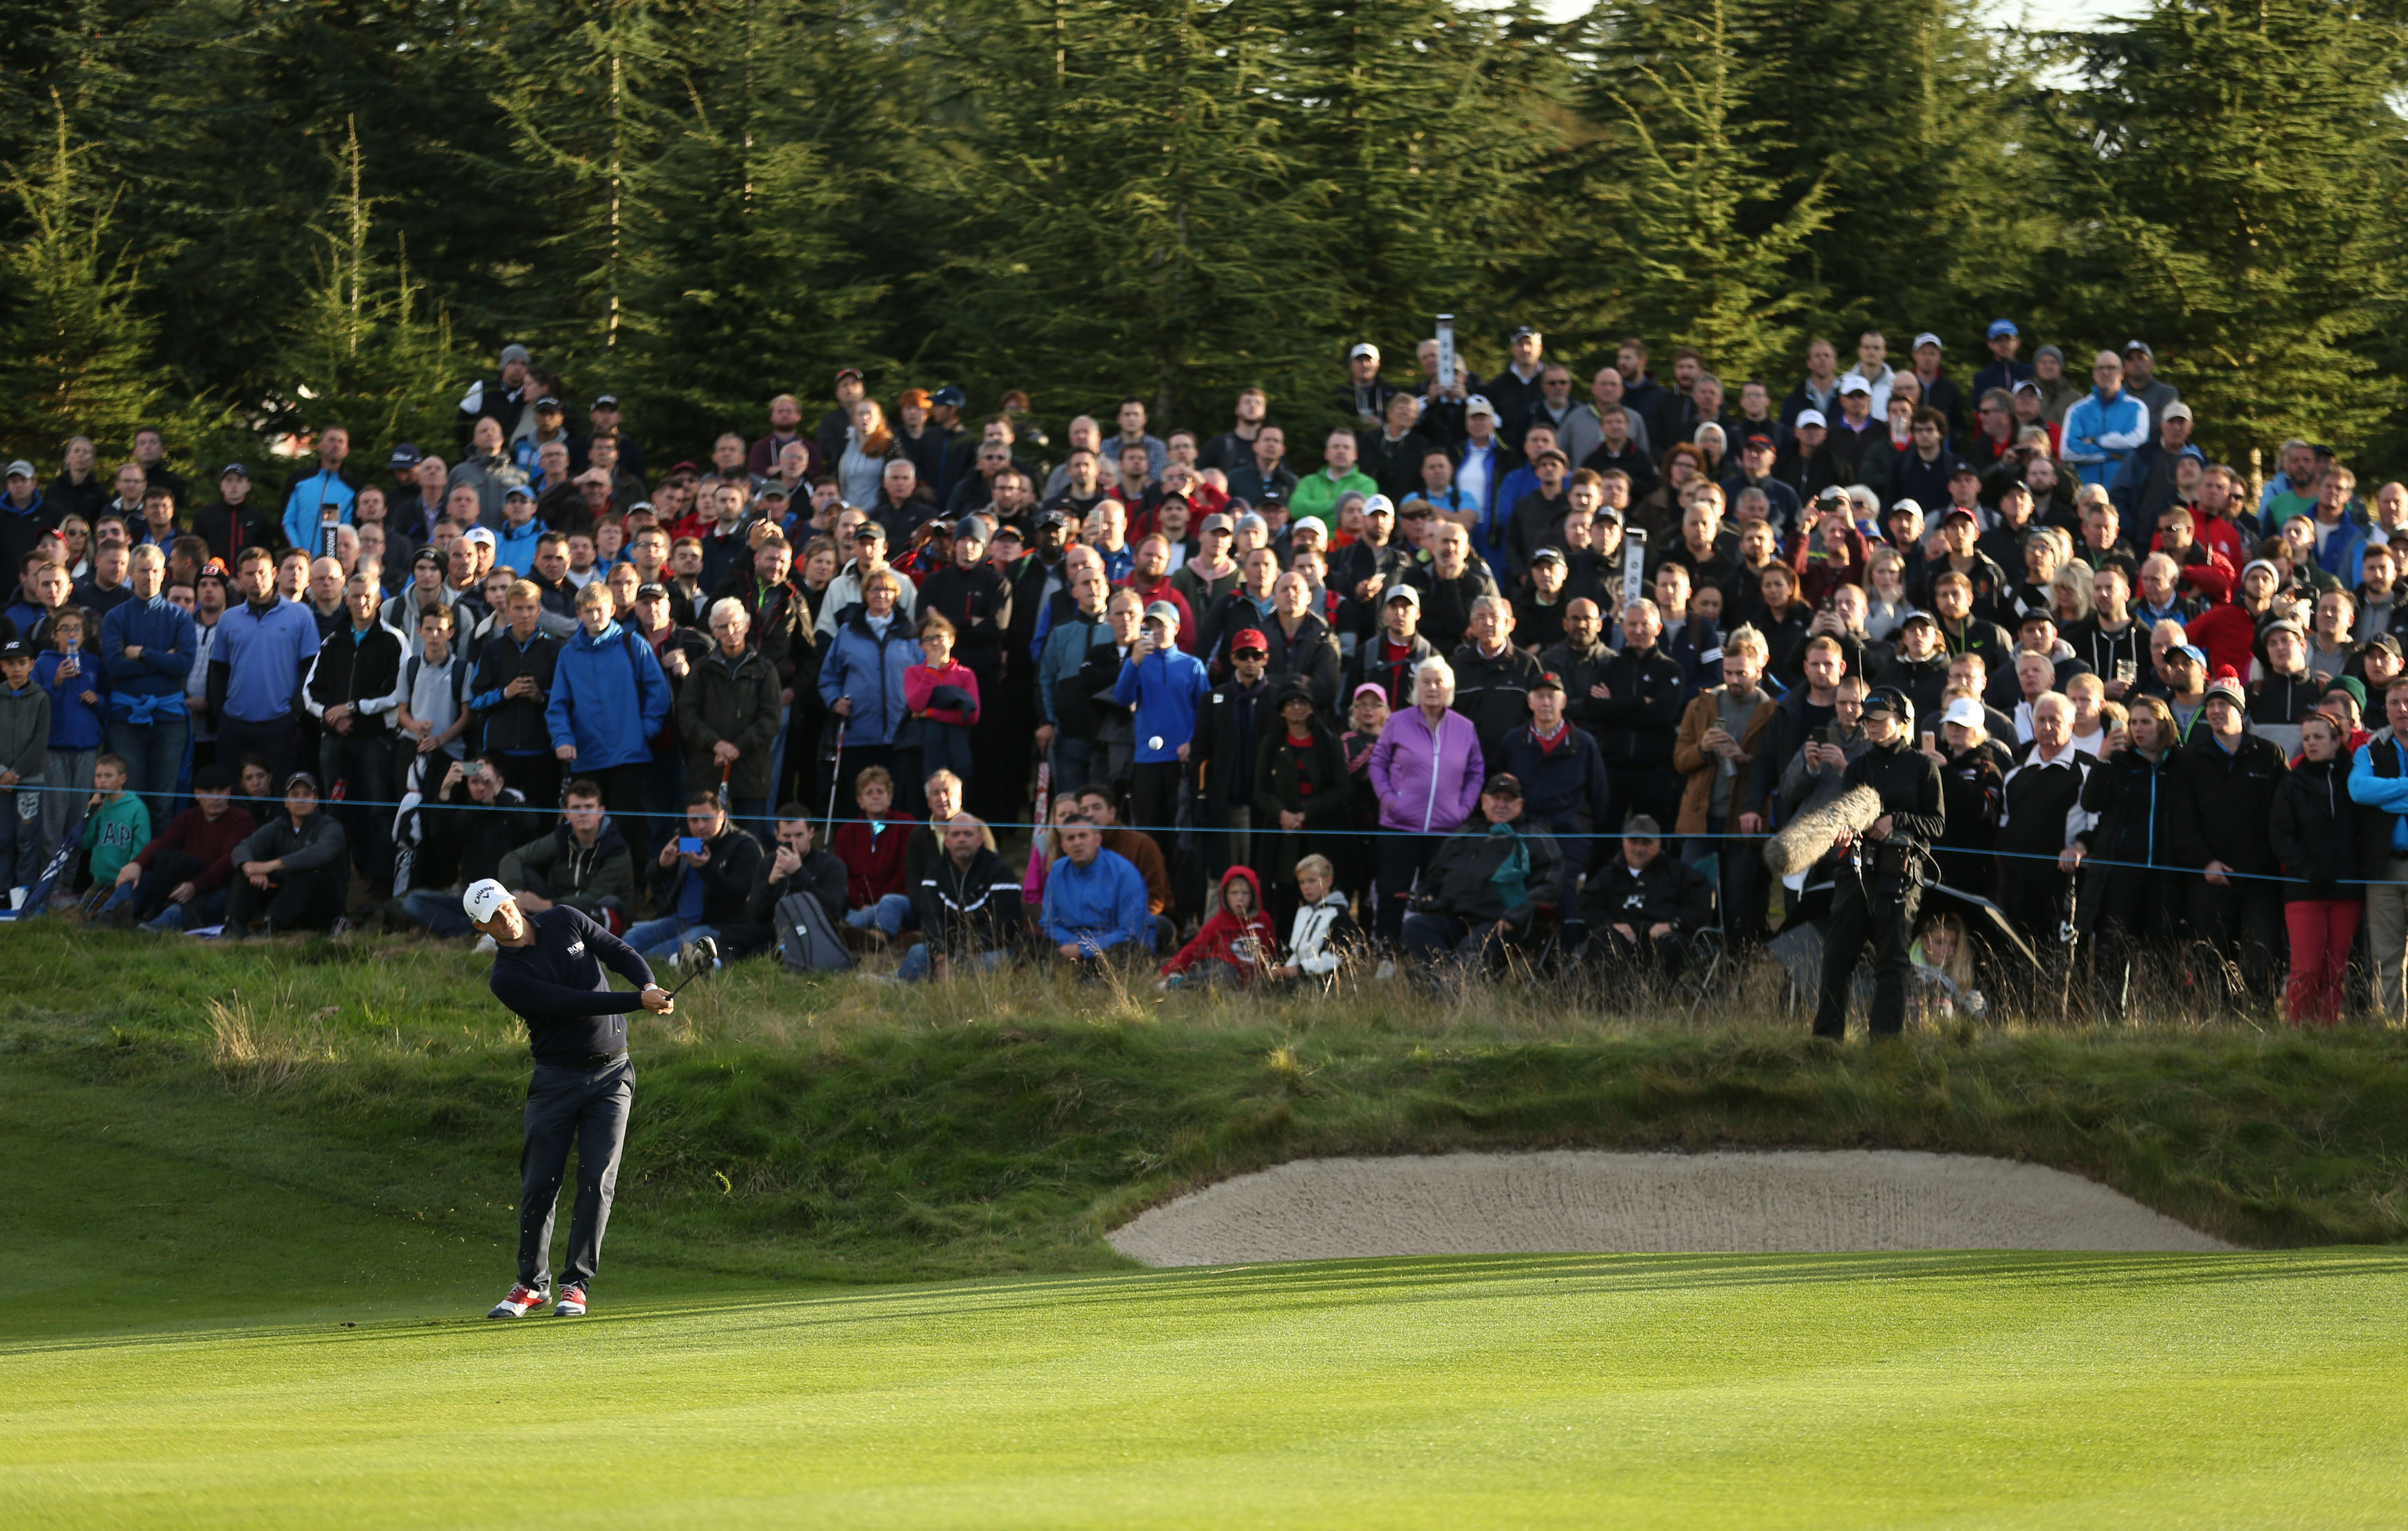 Sweden's Alex Noren plays onto the 18th during day four of The British Masters golf tournament at The Grove, Chandler's Cross, England, Sunday Oct. 16, 2016. Noren won the British Masters. (Steven Paston / PA via AP)